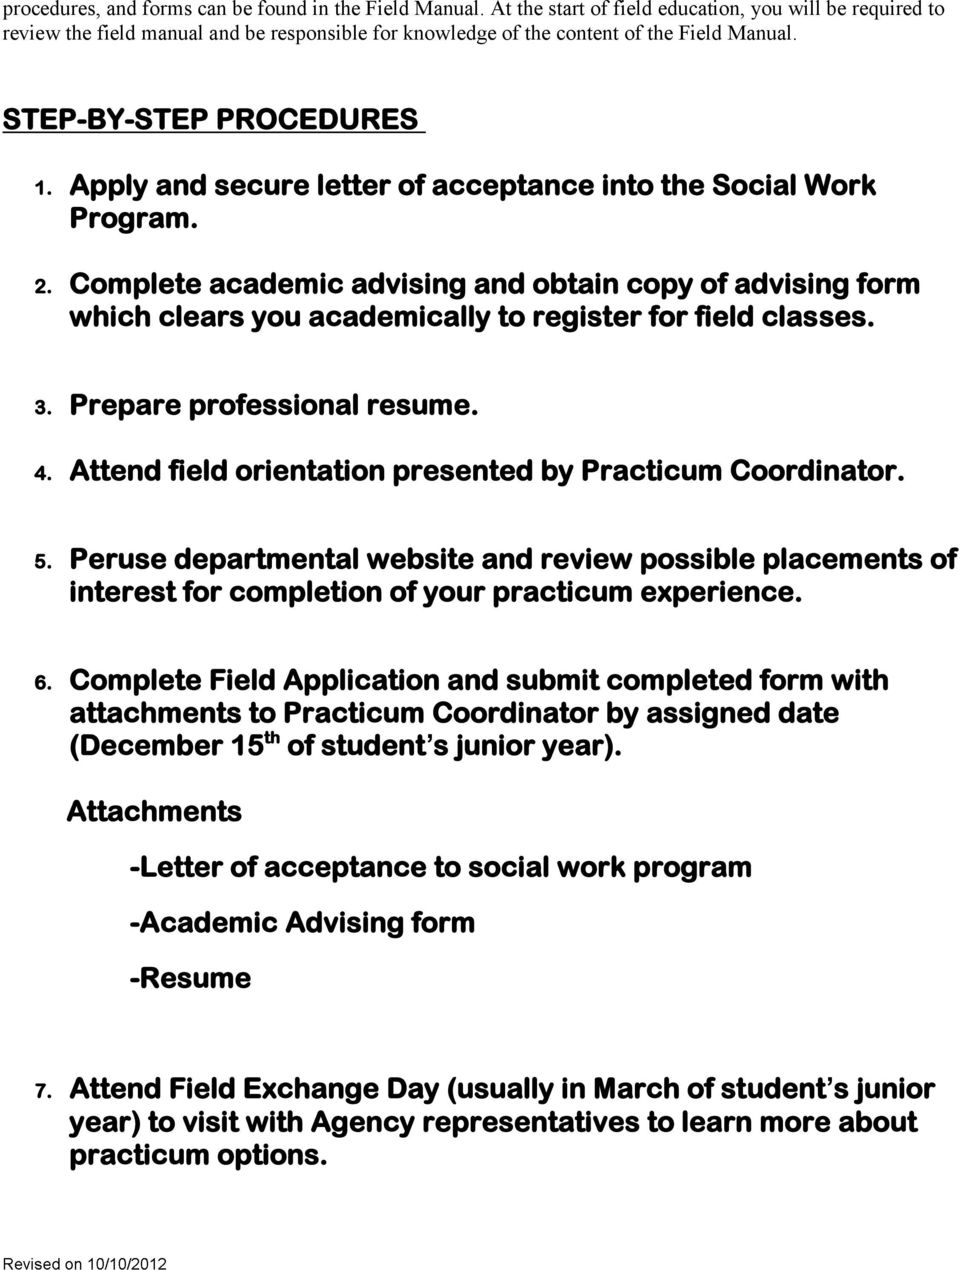 Apply and secure letter of acceptance into the Social Work Program. 2. Complete academic advising and obtain copy of advising form which clears you academically to register for field classes. 3.